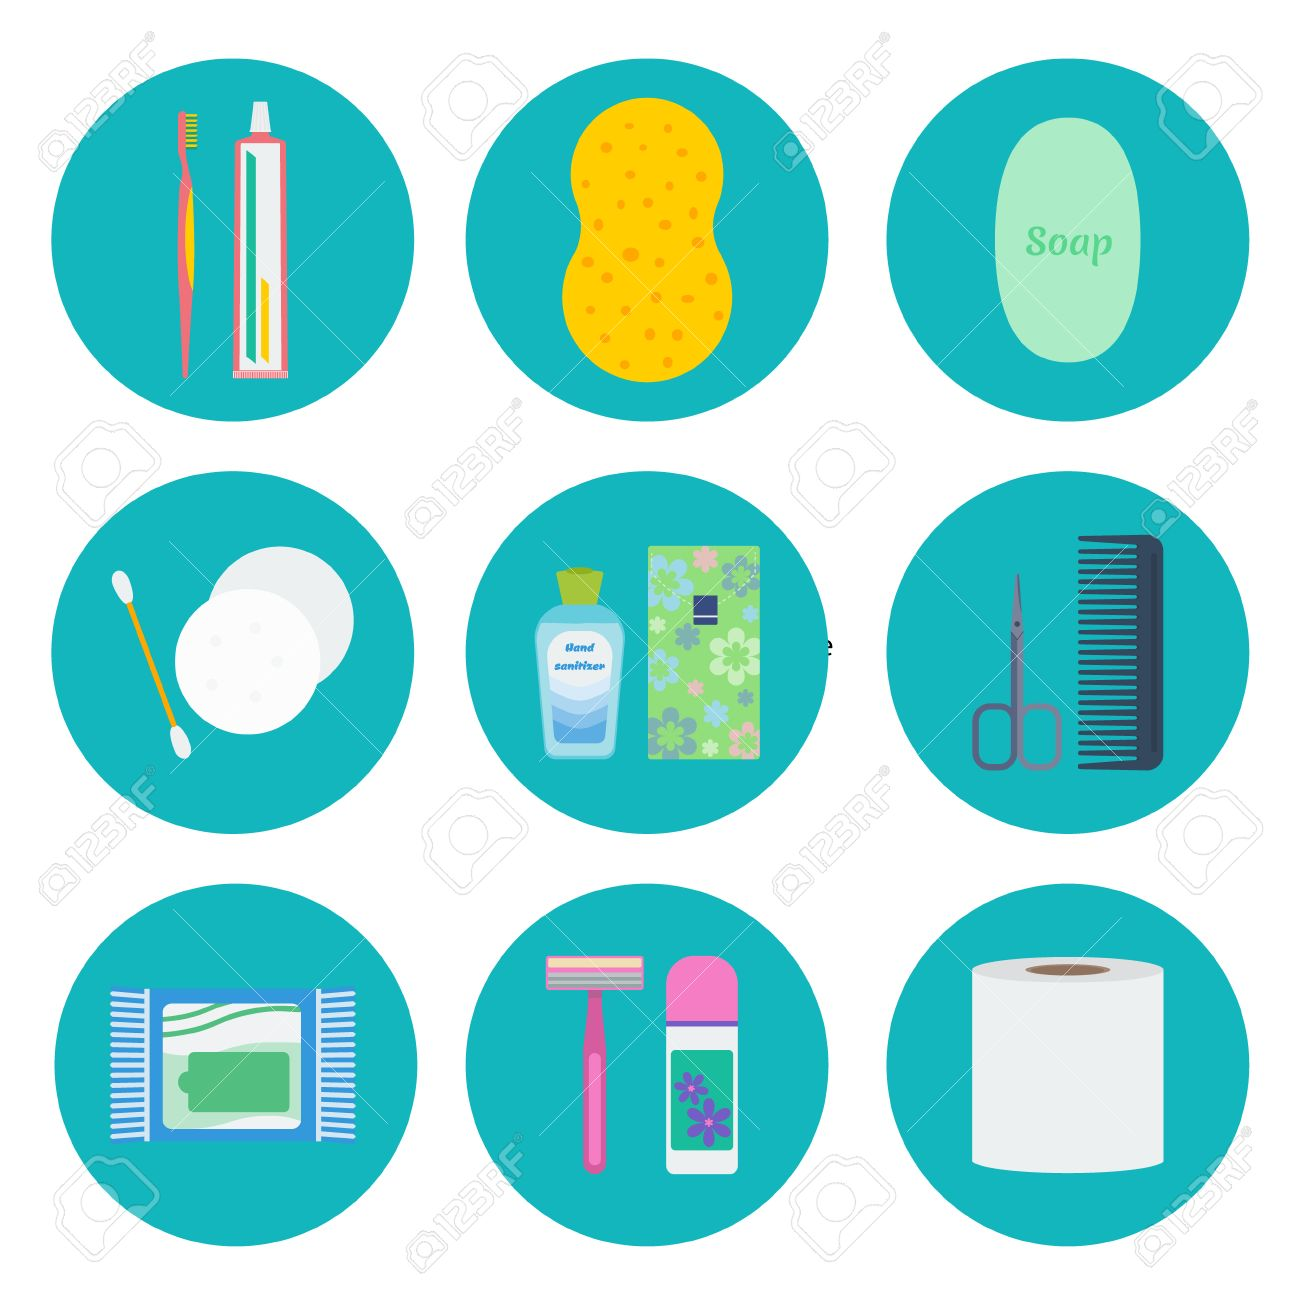 1300x1300 Toothbrush Clipart Personal Hygiene